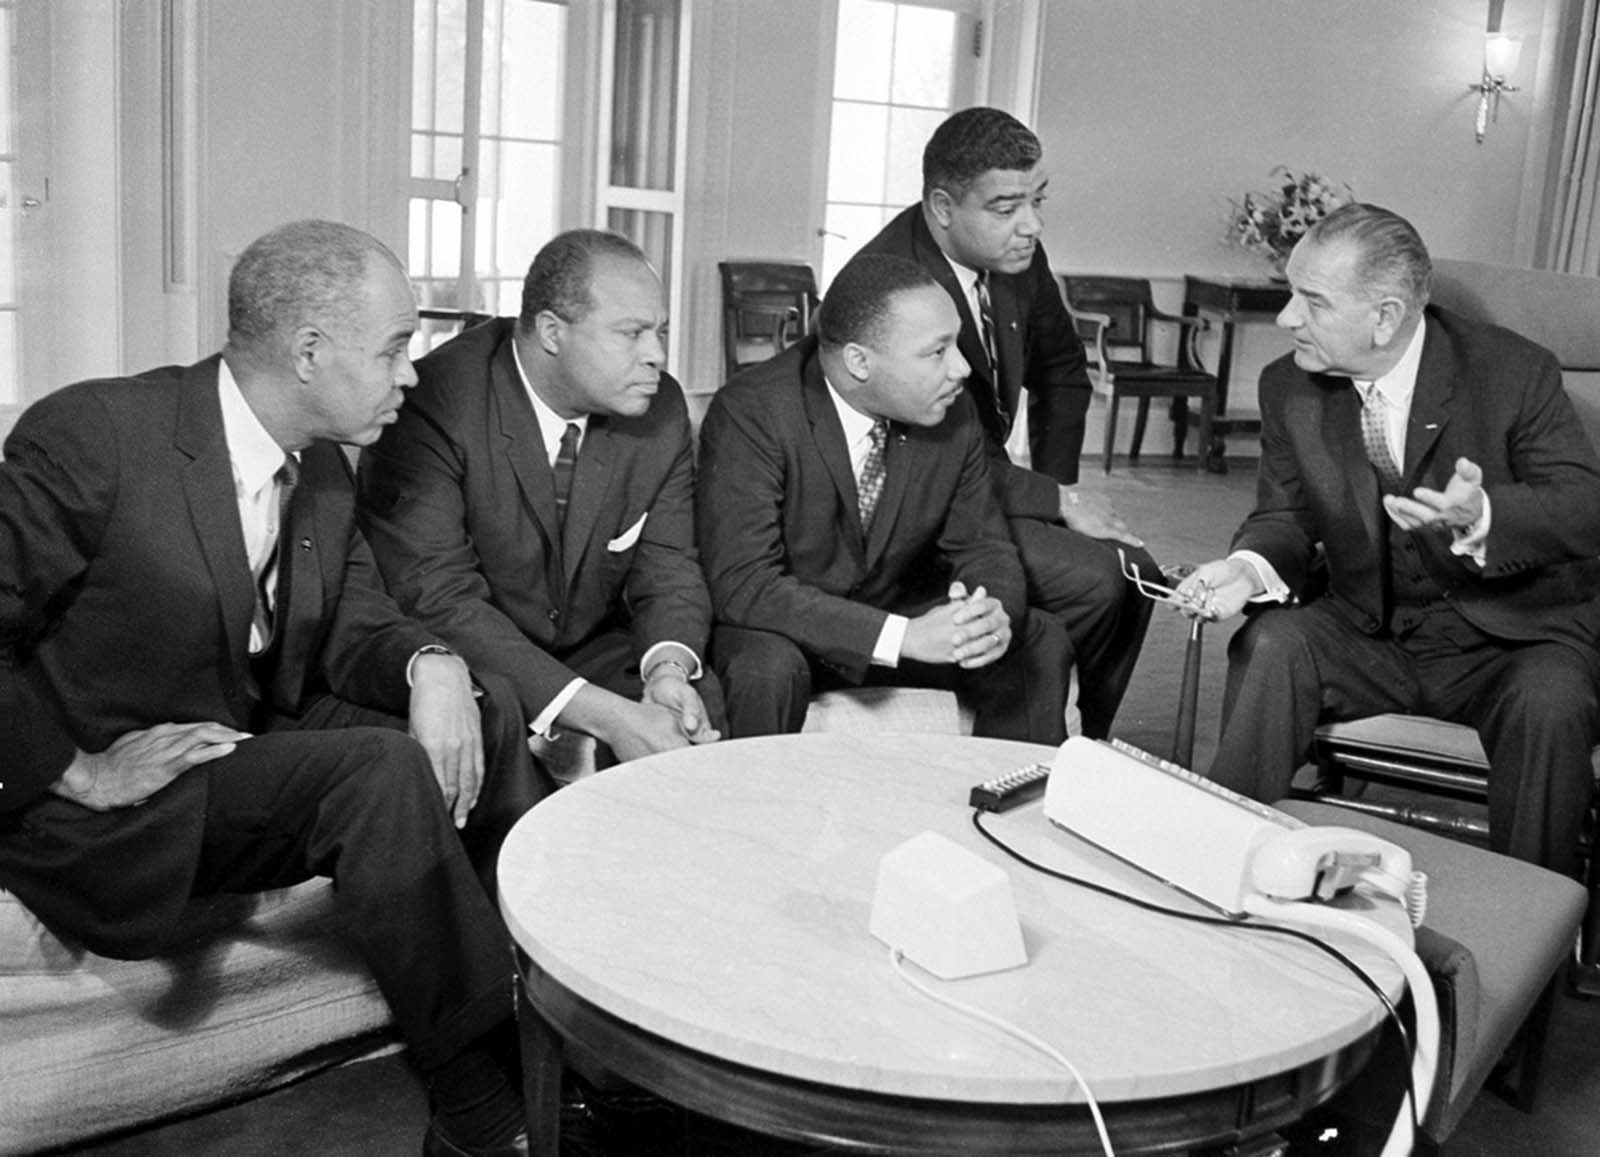 In this January 18, 1964 photo, U.S. President Lyndon B. Johnson, right, talks with civil rights leaders in his White House office in Washington. The black leaders, from left, are, Roy Wilkins, executive secretary of the National Association for the Advancement of Colored People (NAACP); James Farmer, national director of the Committee on Racial Equality; Dr. Martin Luther King Jr., head of the Southern Christian Leadership Conference; and Whitney Young, executive director of the Urban League.